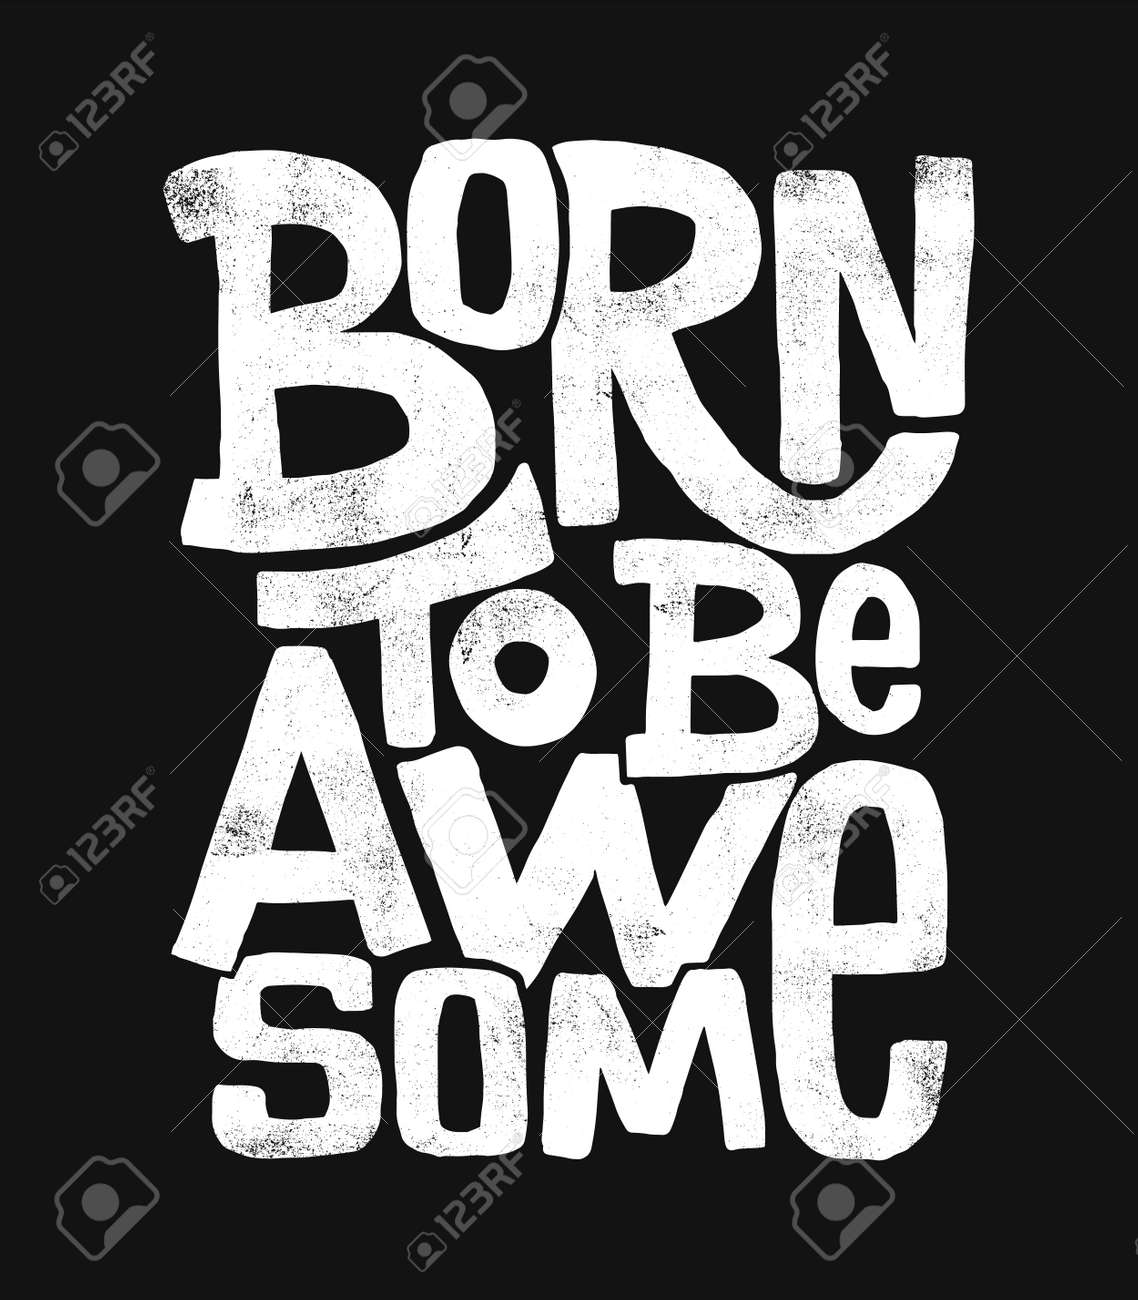 d01beb9cf Born to be awesome hand drawing lettering, t-shirt design Stock Vector -  84948010